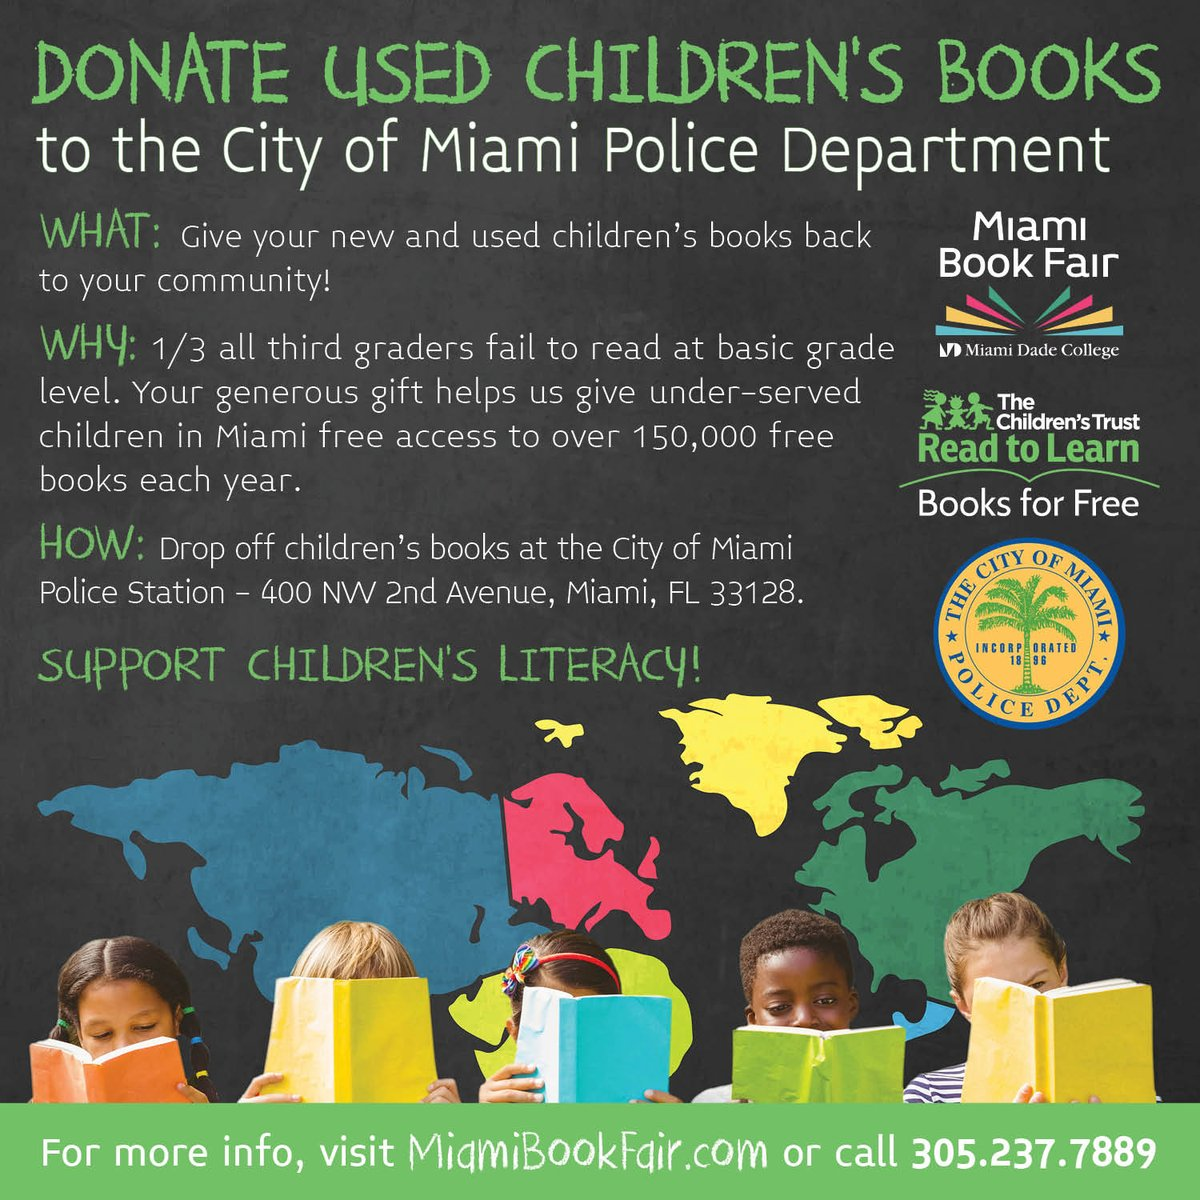 Donate your used children's books to the @MiamiPD #ReadtoLearn donation drive! https://t.co/9RaLKsE9E1